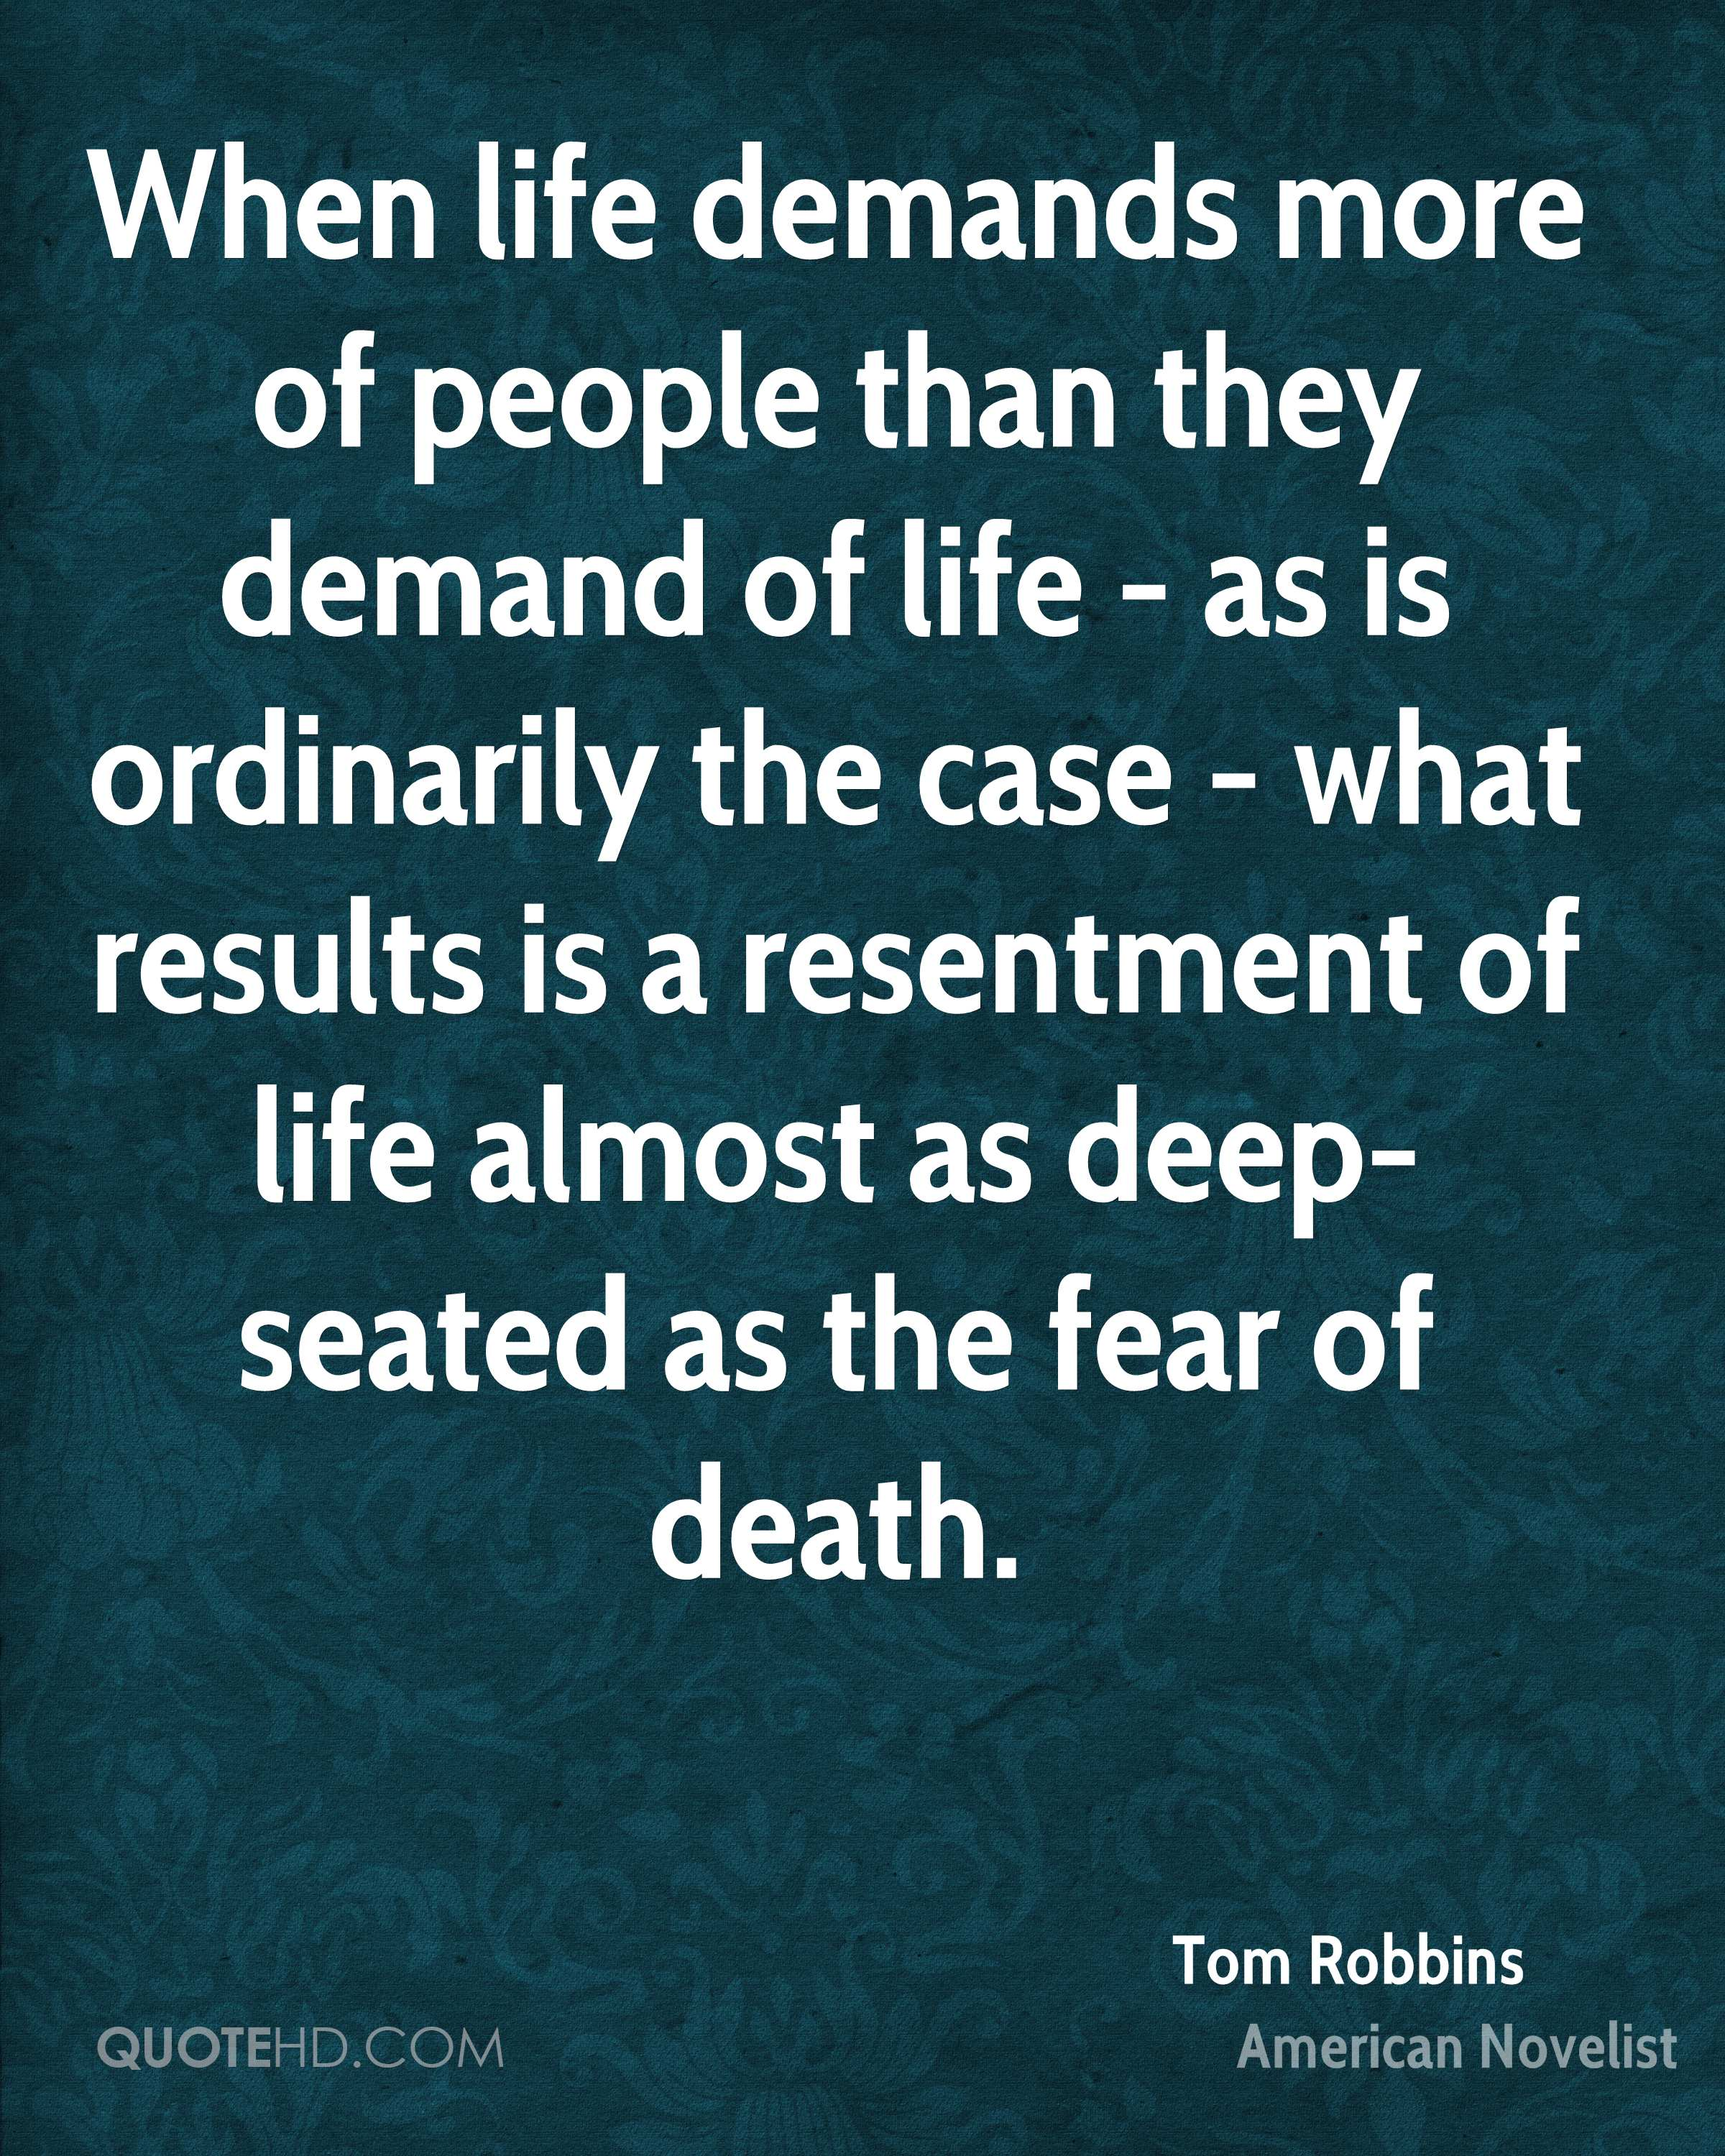 Tom Robbins Death Quotes Quotehd